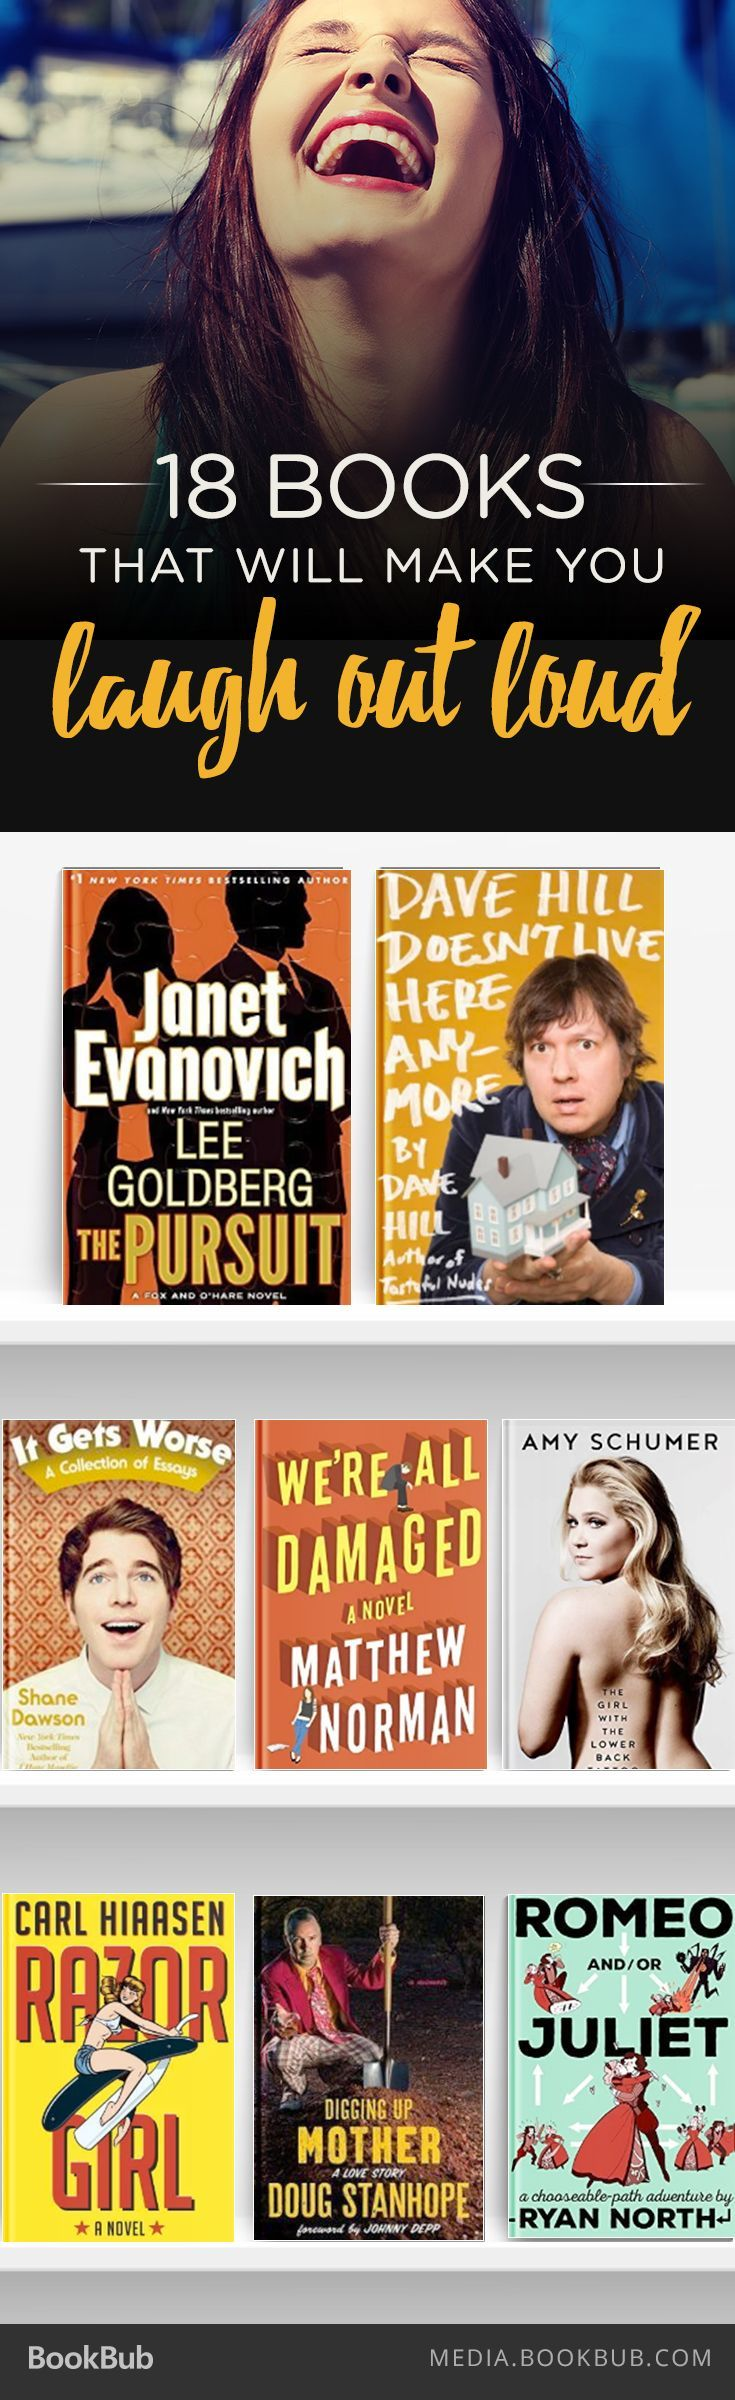 Check out these 18 books that are sure to make you laugh out loud.